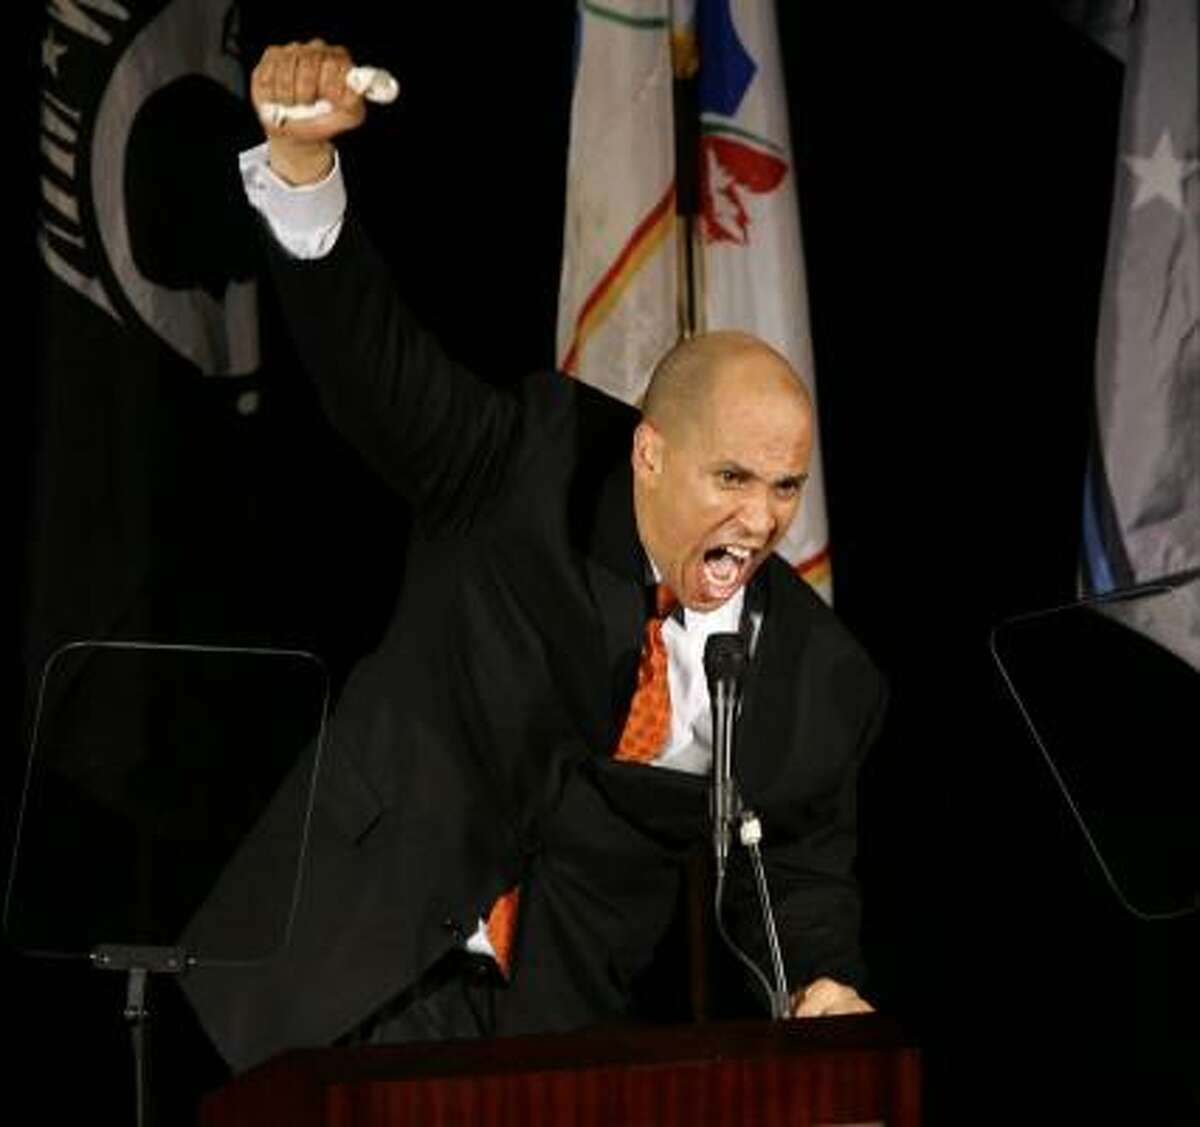 CORY BOOKER Elected mayor of Newark in 2002 at the age of 33, Booker remains one of the most promising African American politicians of the post-Baby Boom generation. He's a contender for statewide office or a White House post some day.